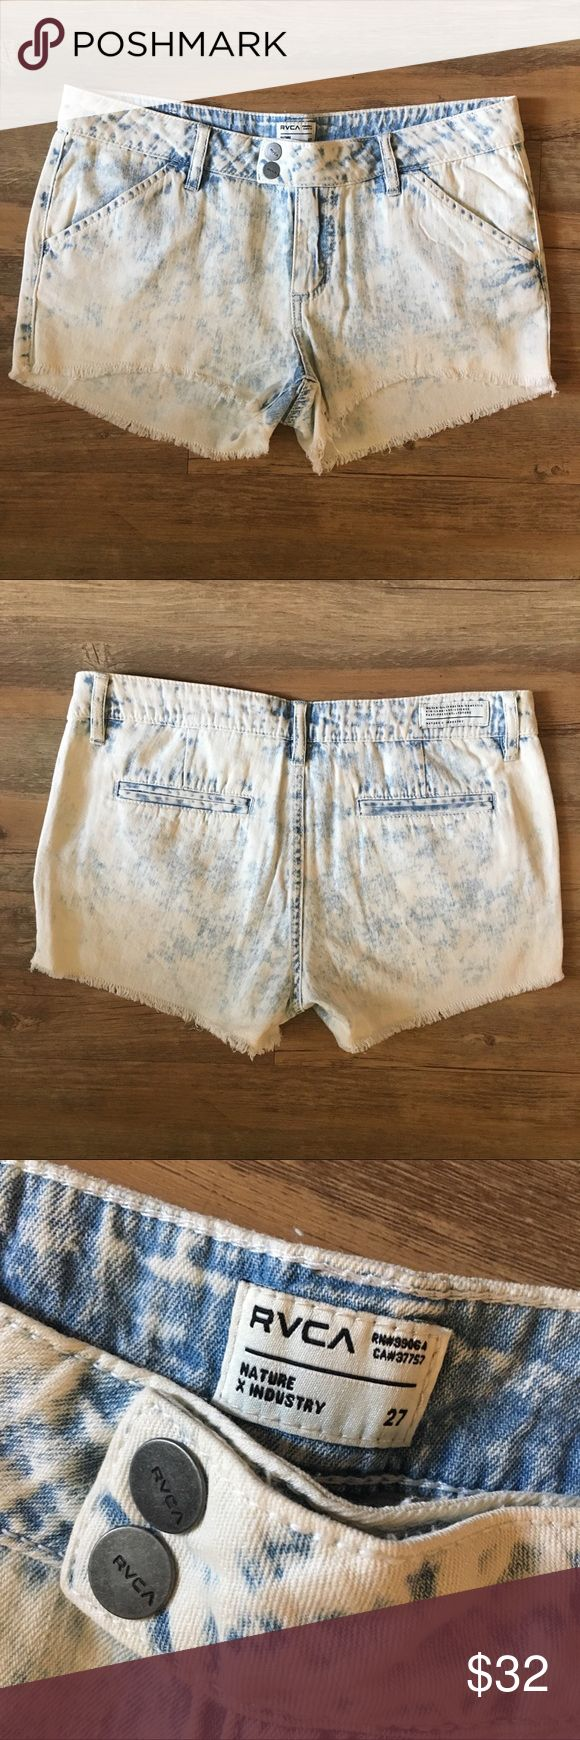 RVCA Acid Wash Shorts NWOT RVCA acid wash shorts, never worn! Would fit best on someone with narrow hips and thin legs. 🛍 Bundles: I offer a 15% discount for bundles of 2 or more items! ❌No Trade RVCA Shorts